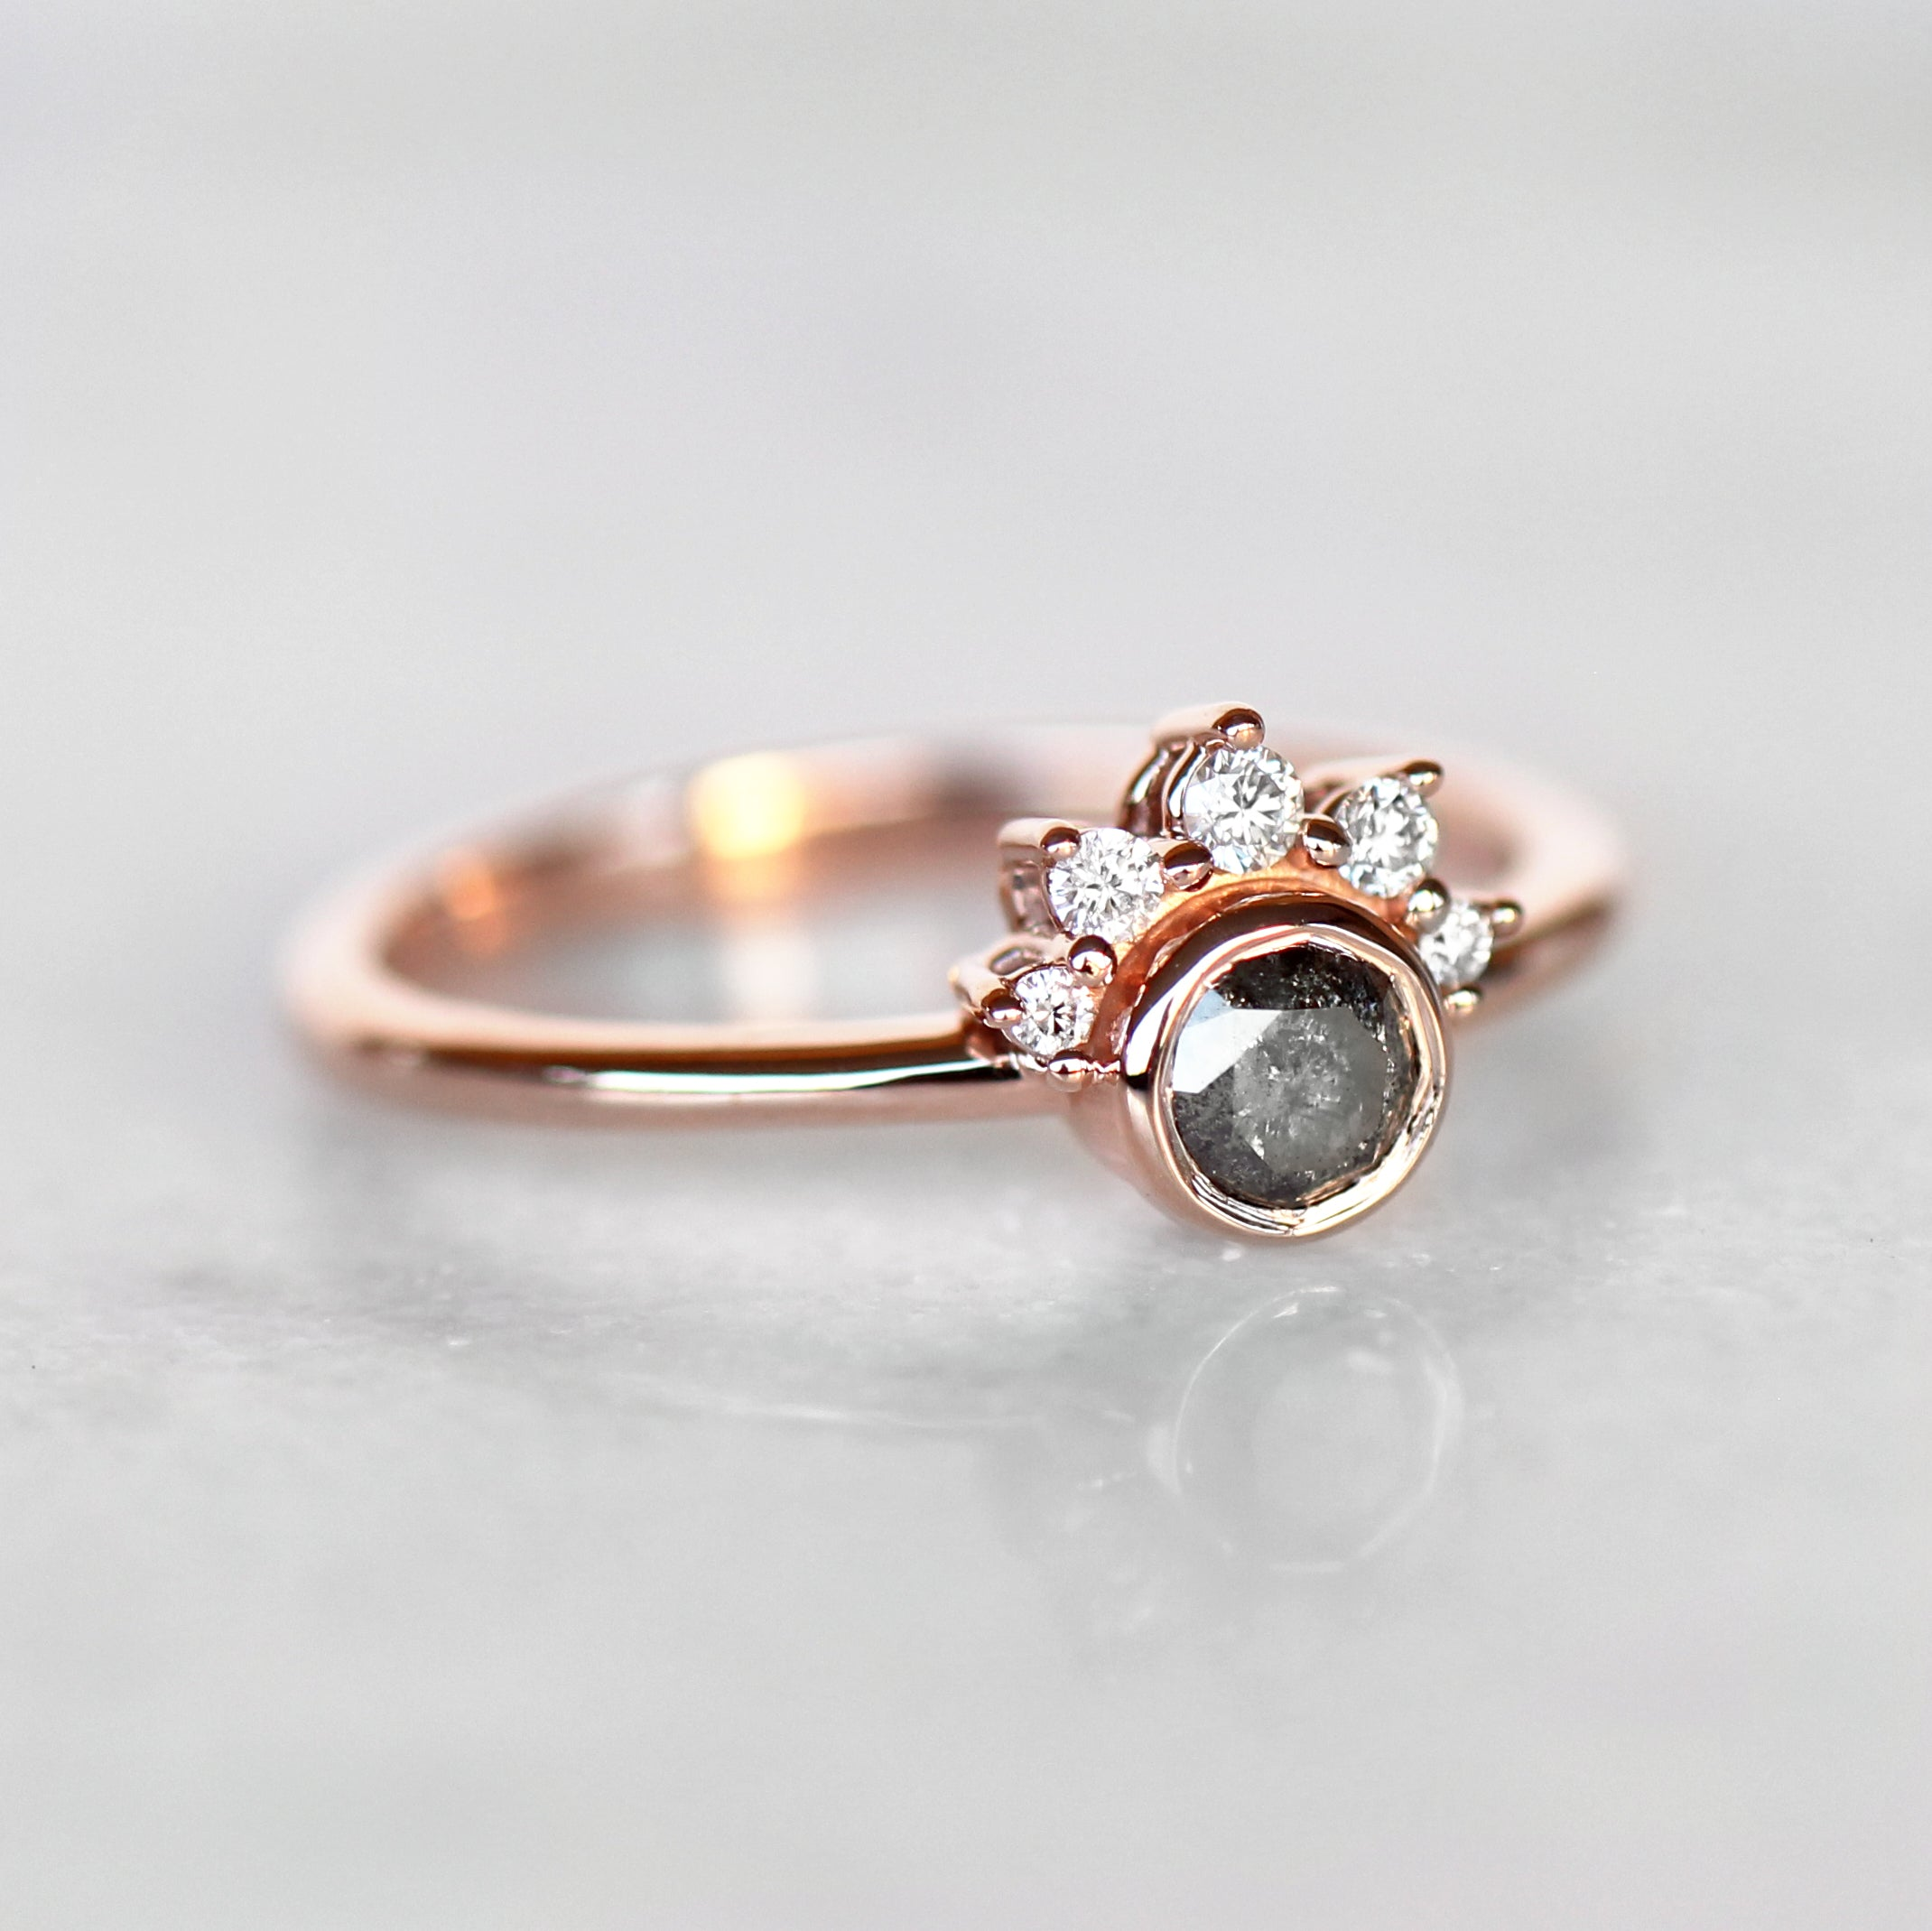 Ashlyn Ring with Gray Celestial Diamond in 10k Rose Gold- Ready to Size and Ship - Celestial Diamonds ® by Midwinter Co.